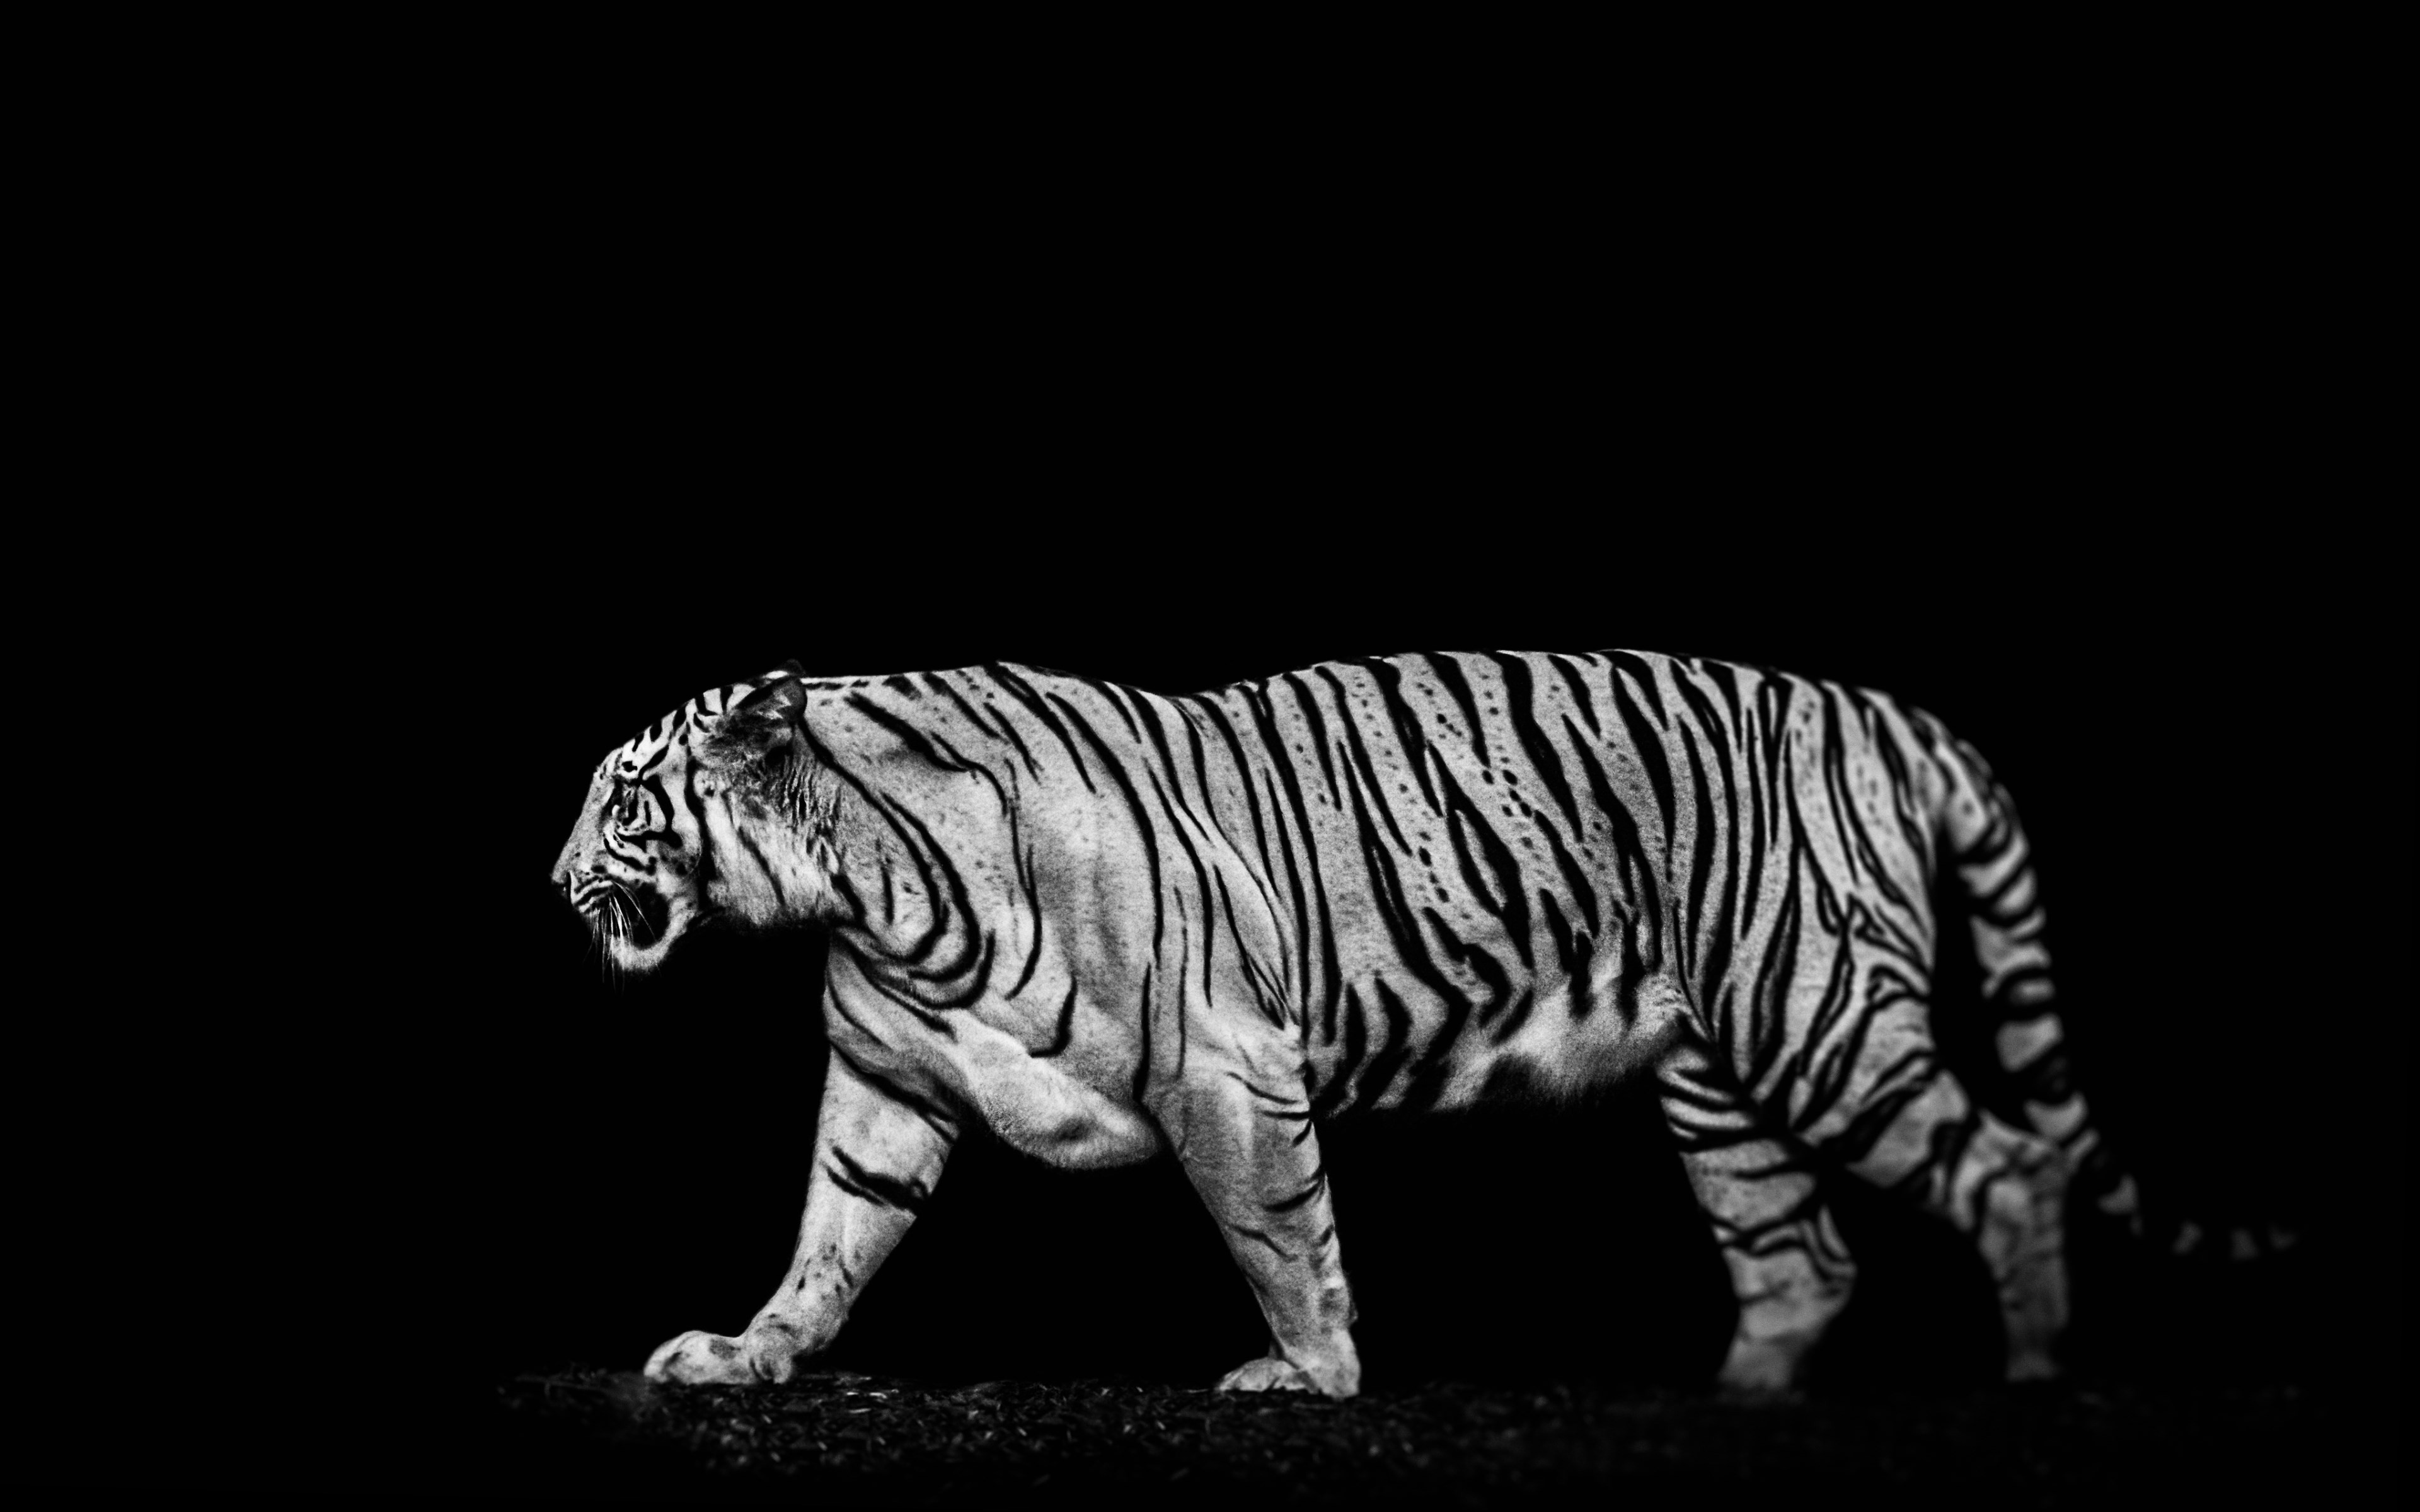 Tiger in the darkness wallpaper 3840x2400